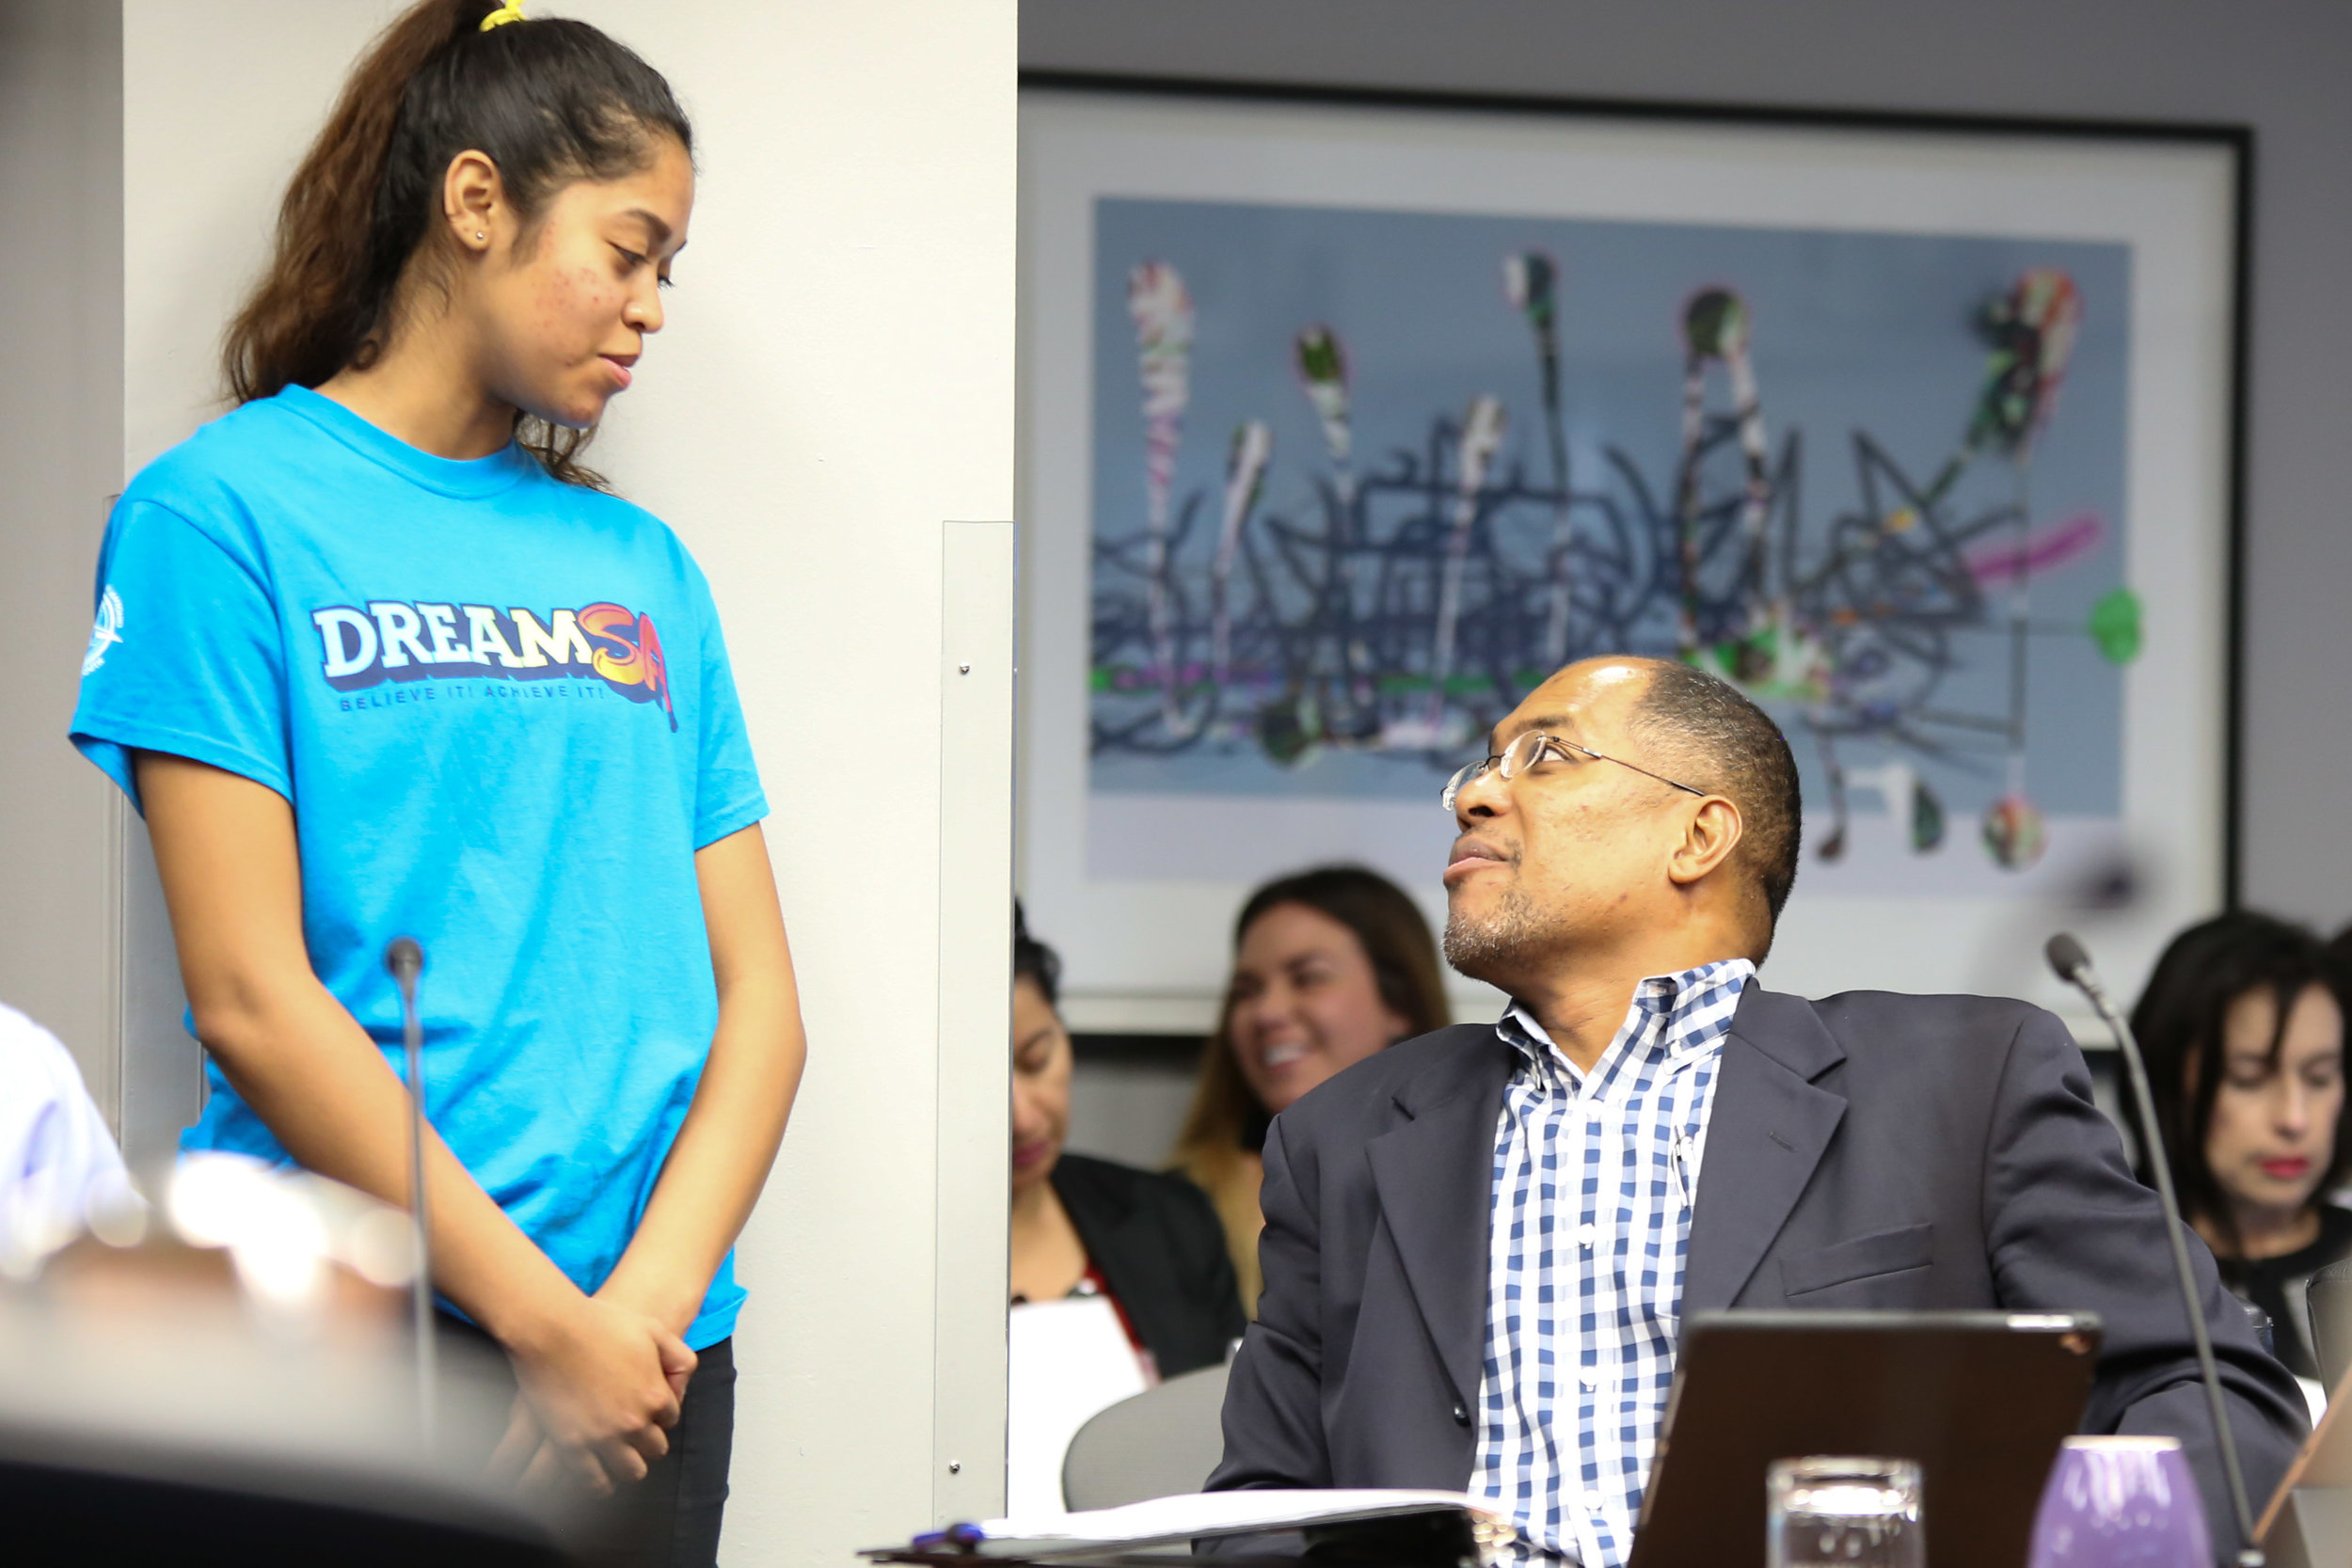 District 2 Councilman Art Hall speaks with a DreamSA student. (Photo Credit:  GA Media Productions )